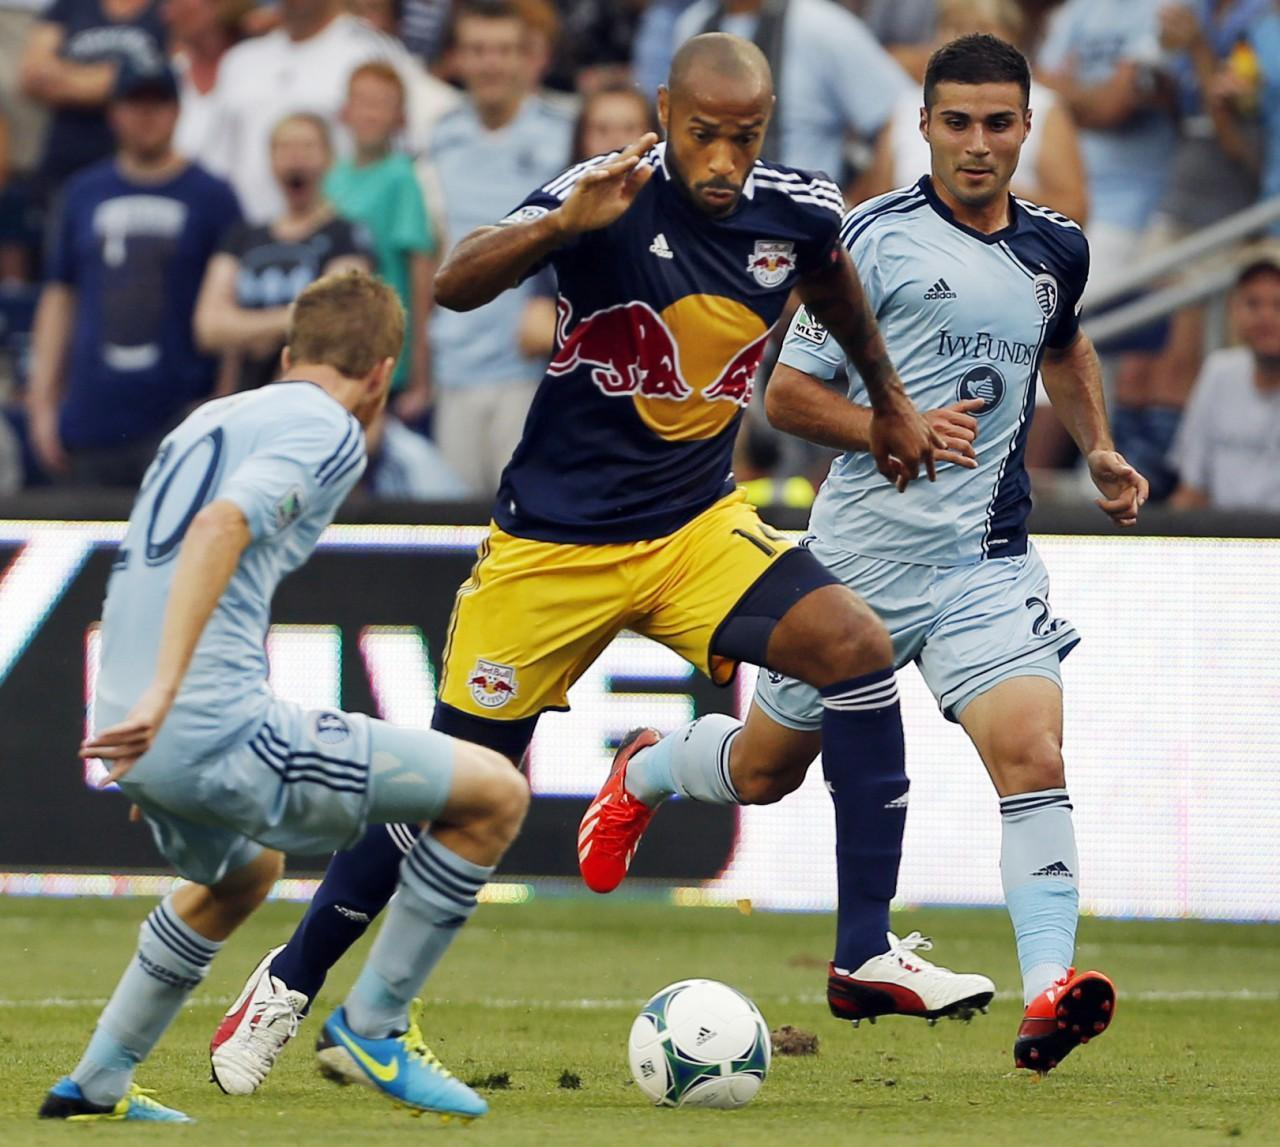 French striker Thierry Henry has helped NewYork reach the top of the MLS standings. (Orlin Wagner/AP)